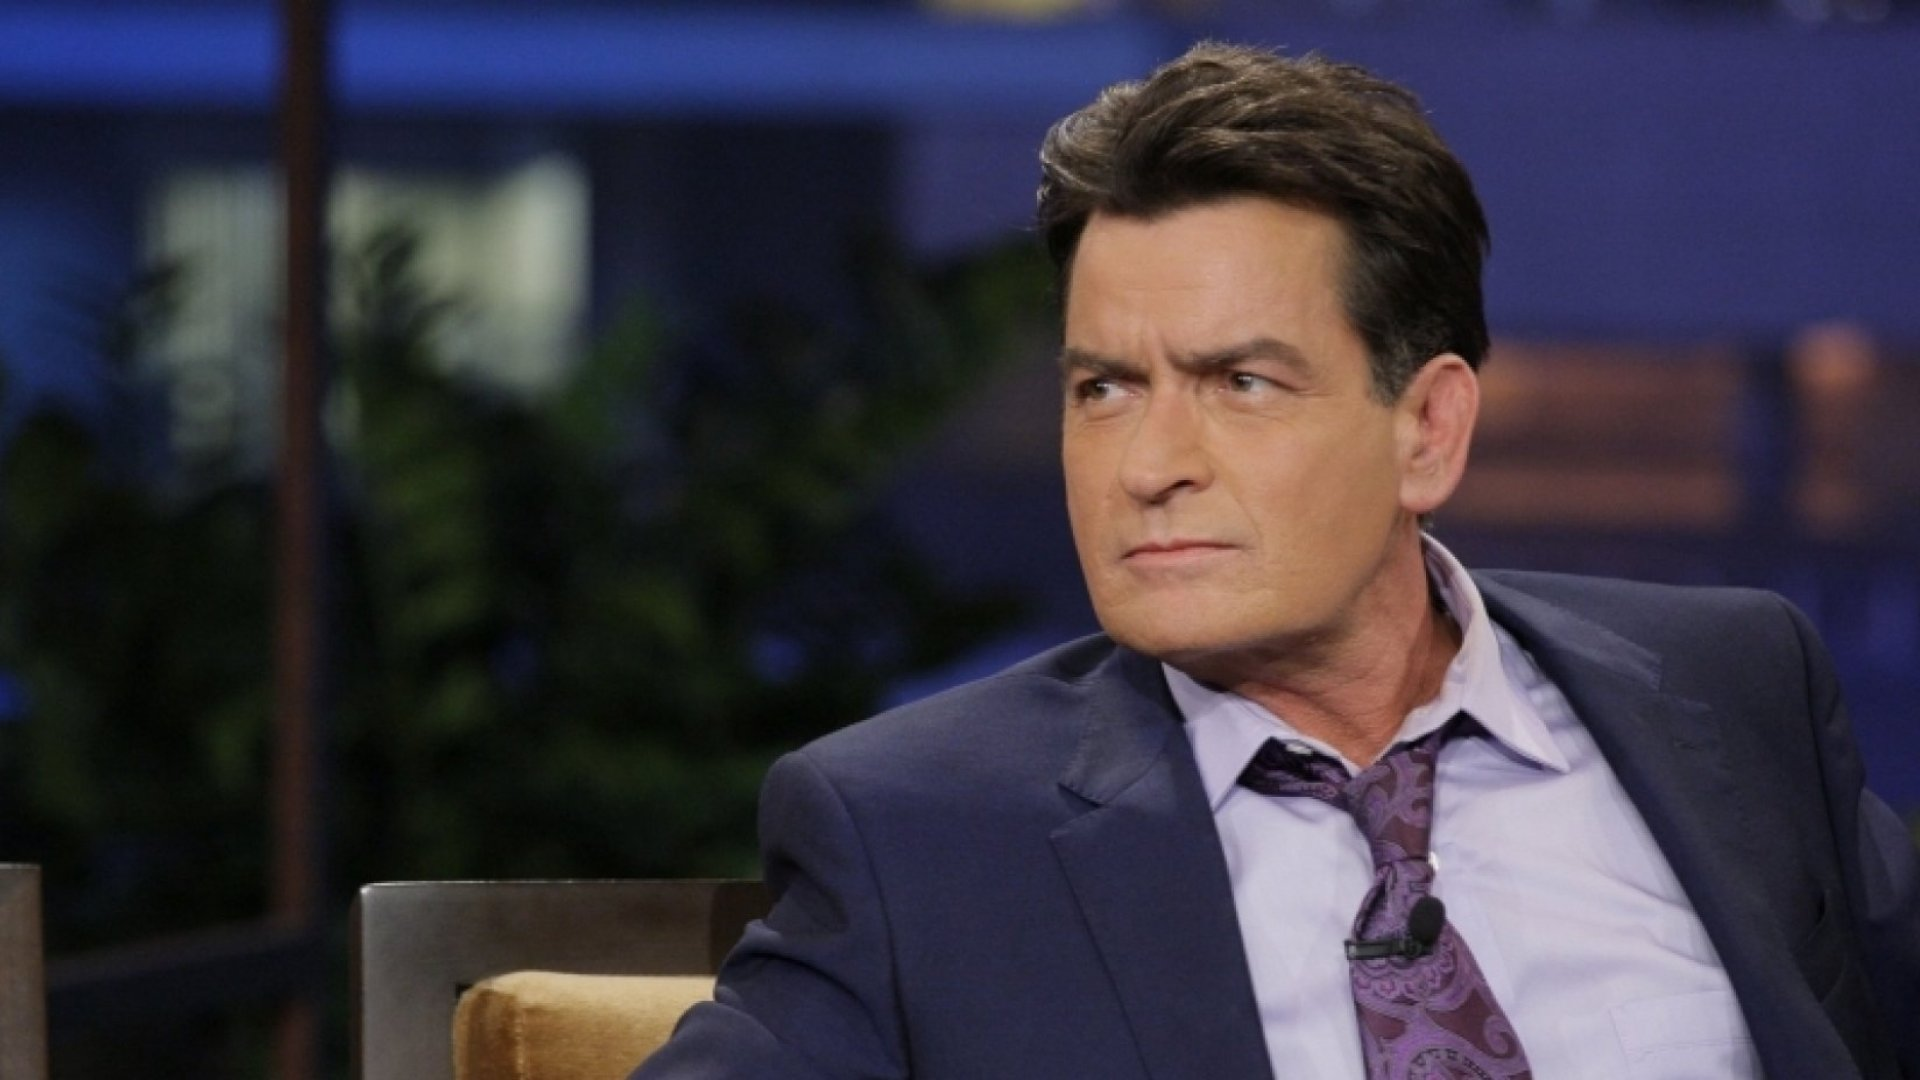 What if Charlie Sheen Were Your Employee?